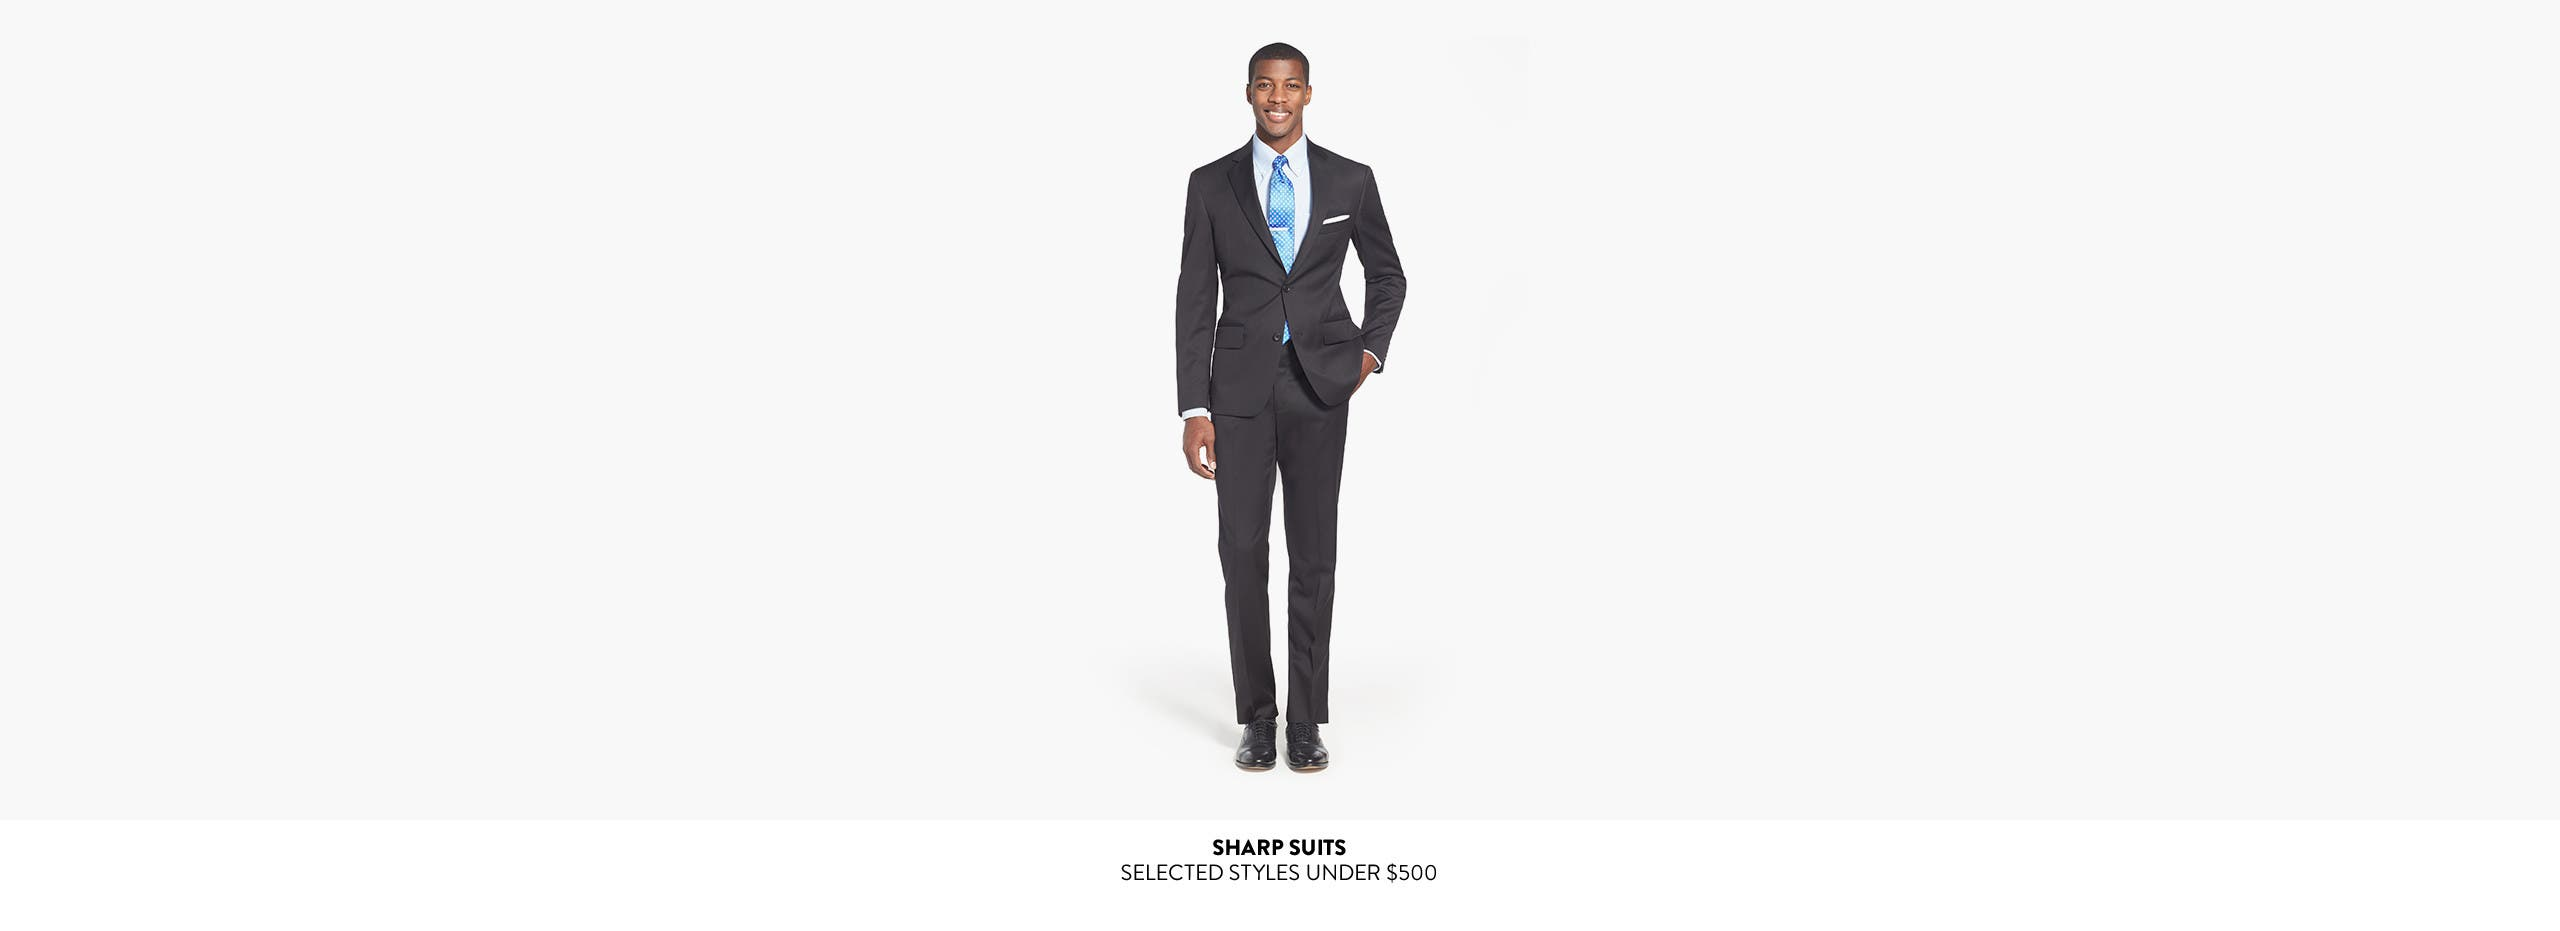 Sharp suits: selected styles under $500.